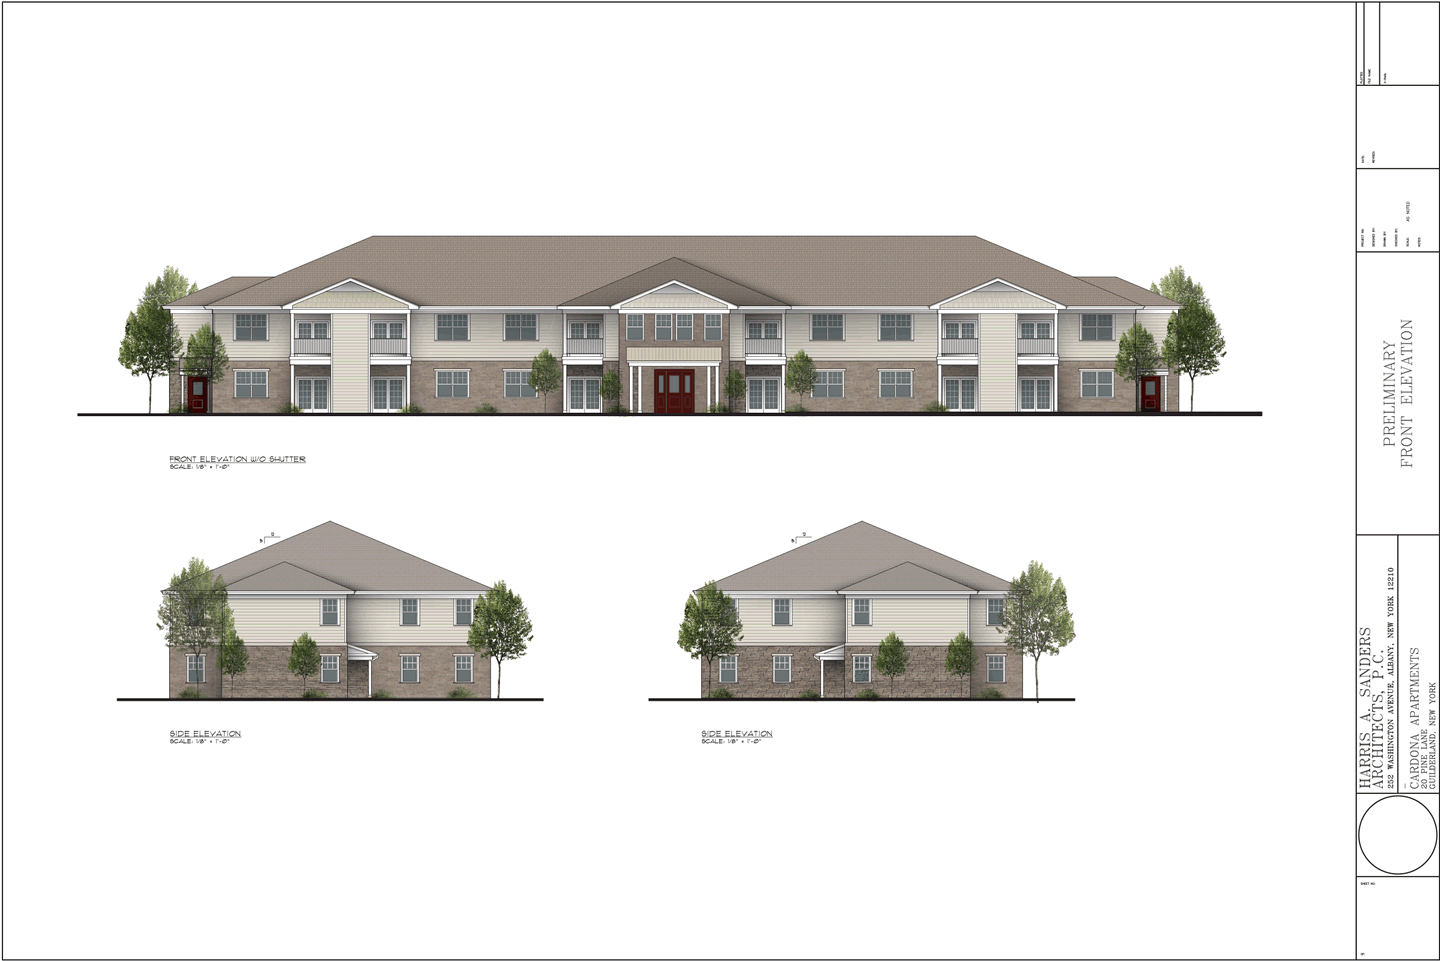 30 Pine Lane apartments elevations